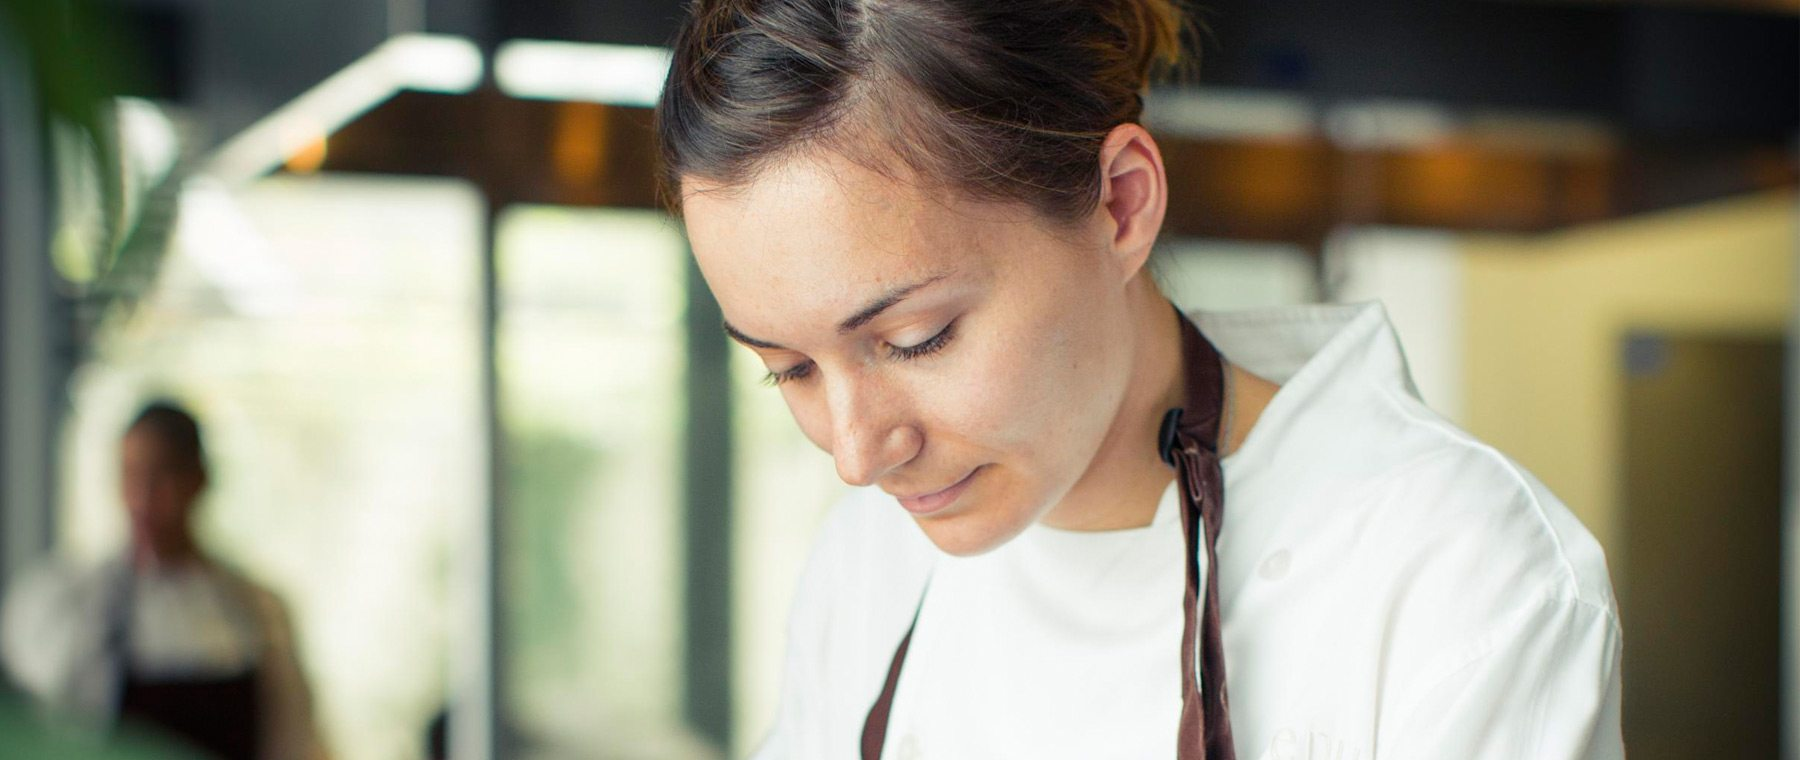 Meet the 28-year-old Ottawa-born chef turning heads on the international fine dining stage